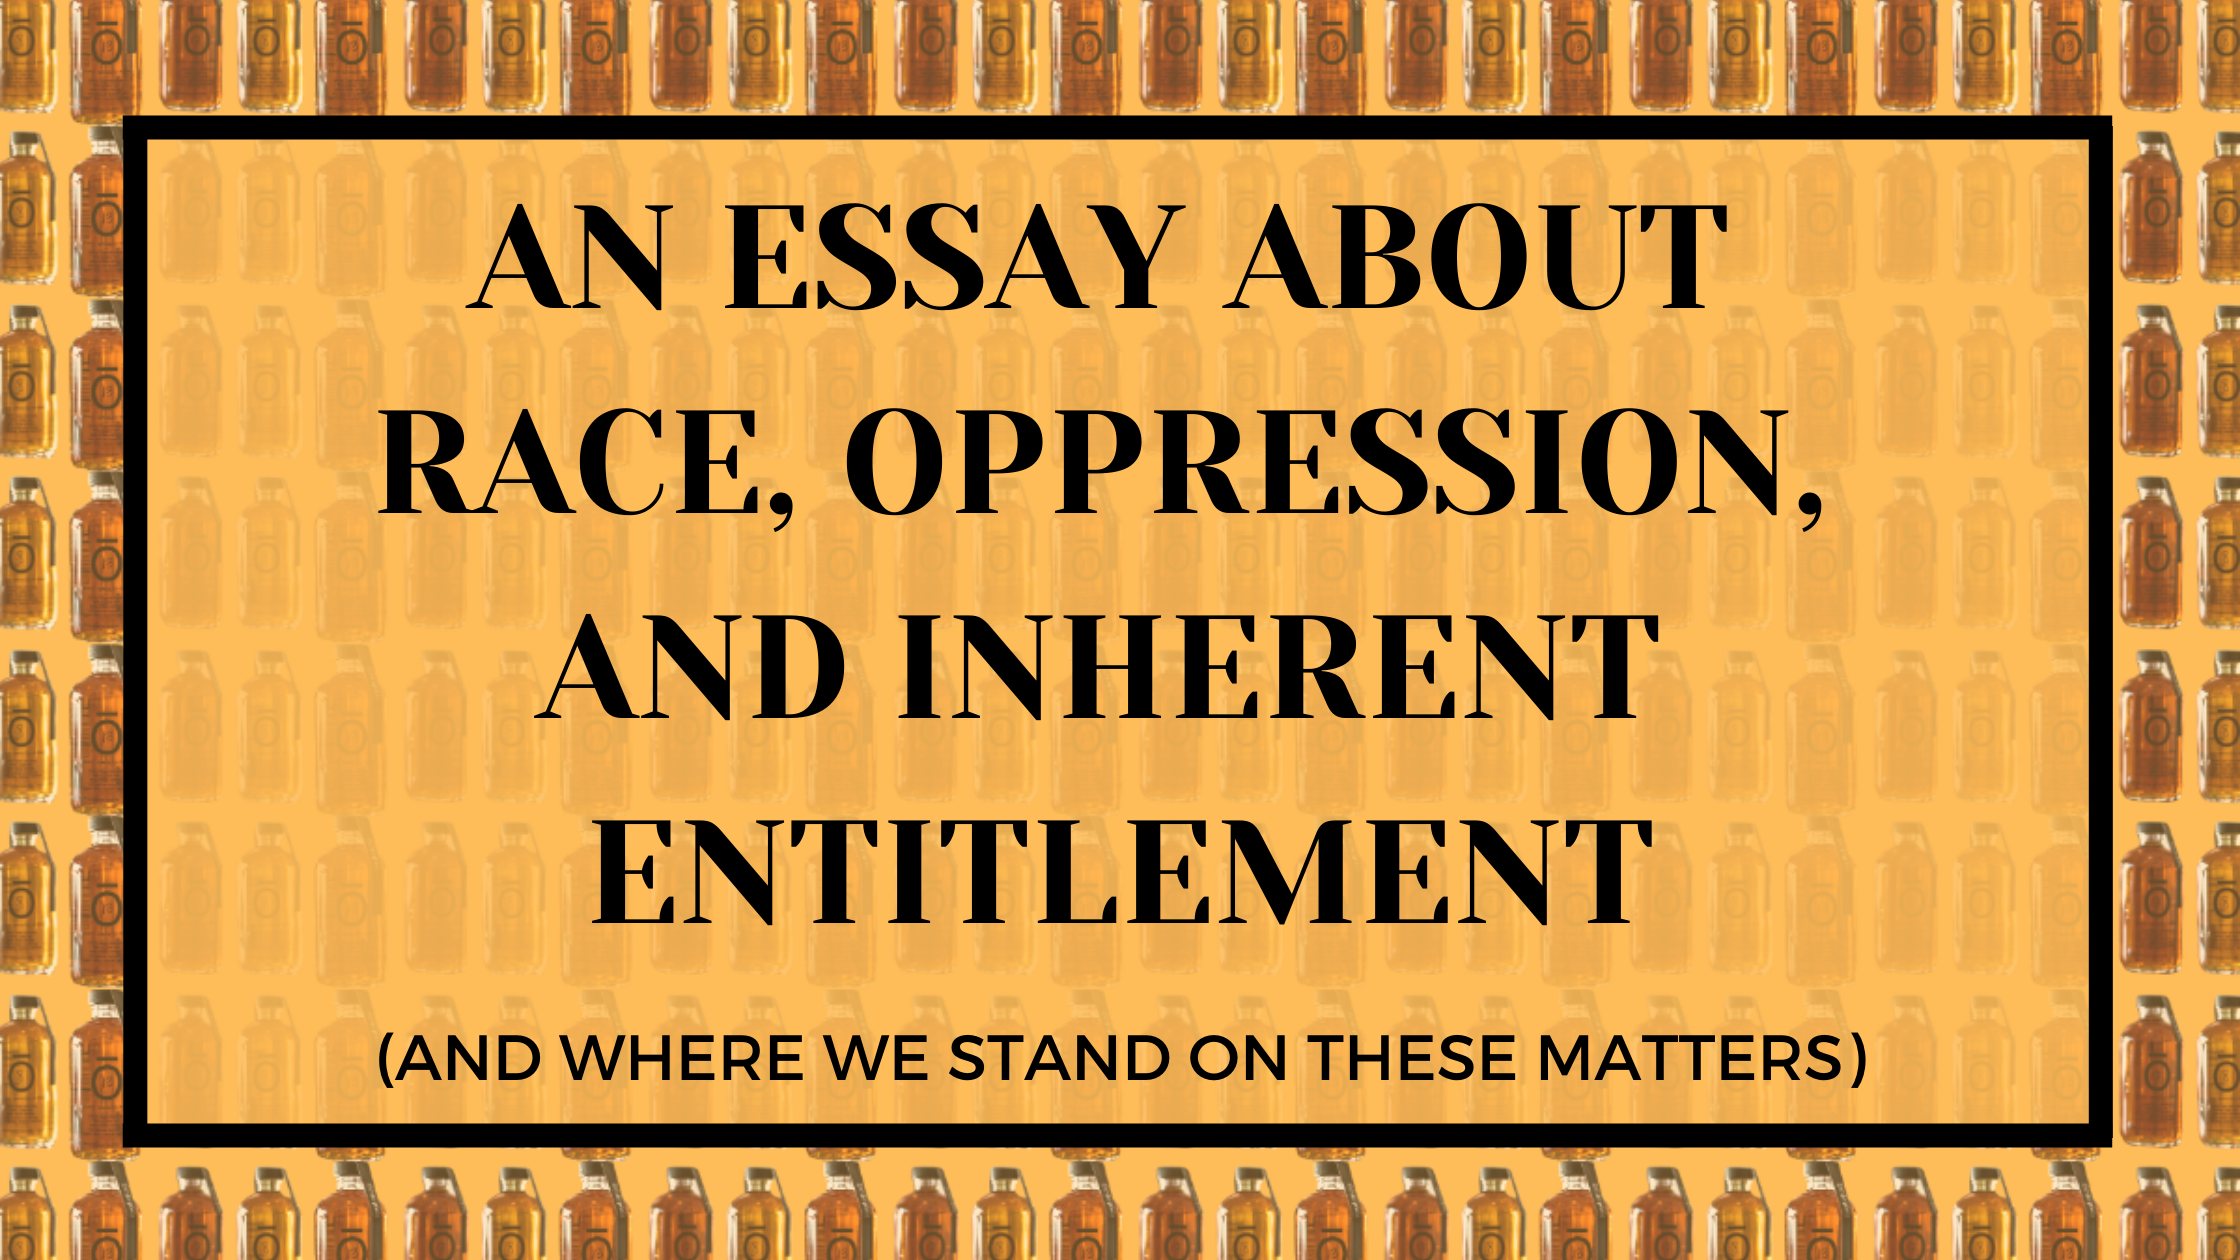 An Essay About Race, Oppression and Inherent Entitlement (And Where We Stand on these Matters)